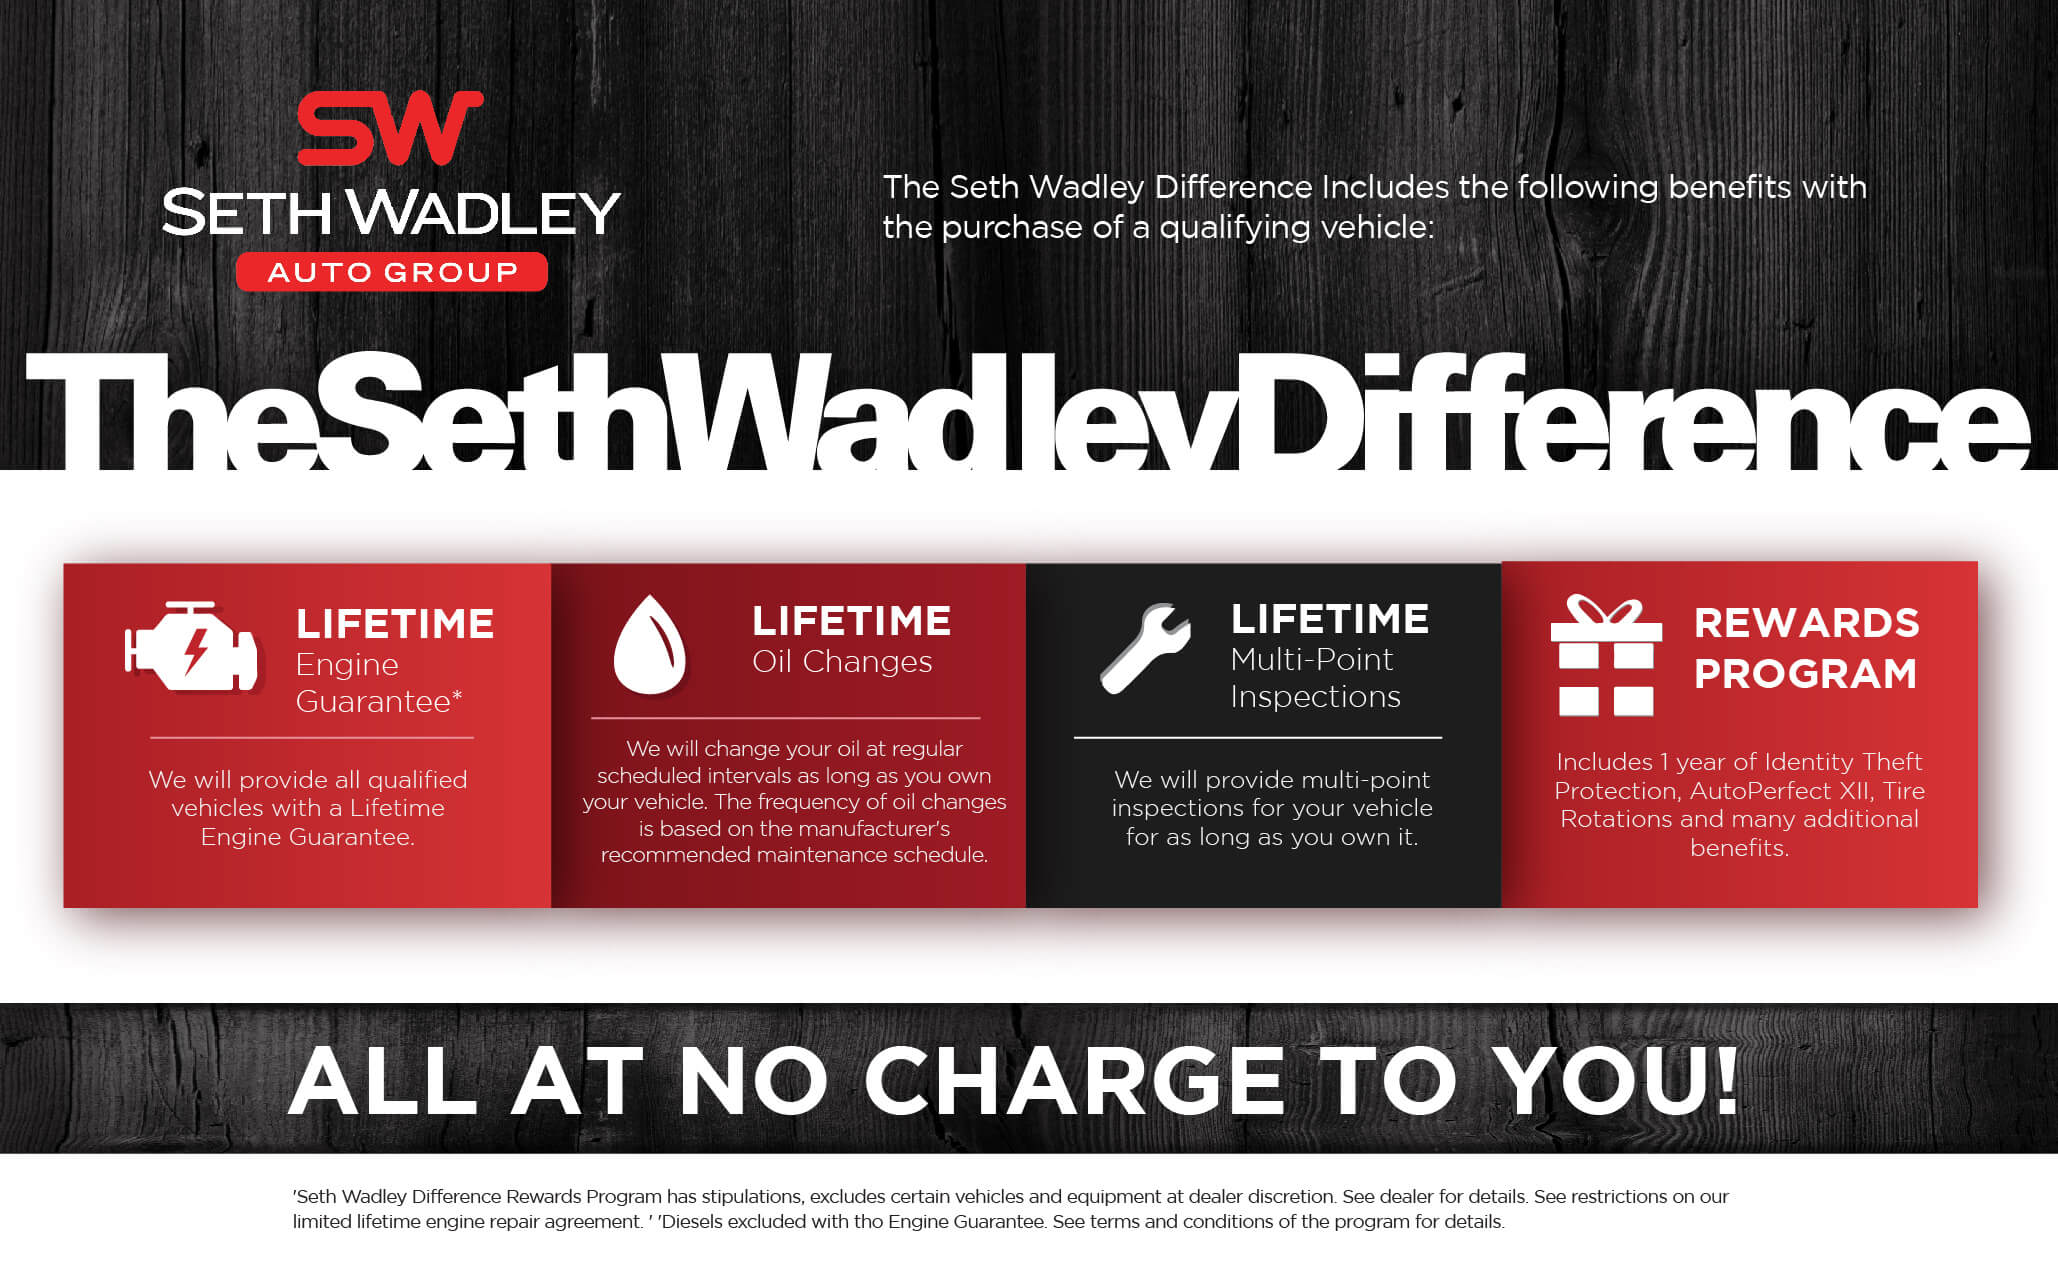 Seth Wadley Chrysler Dodge Jeep Ram has Exemplary Aftersales Service